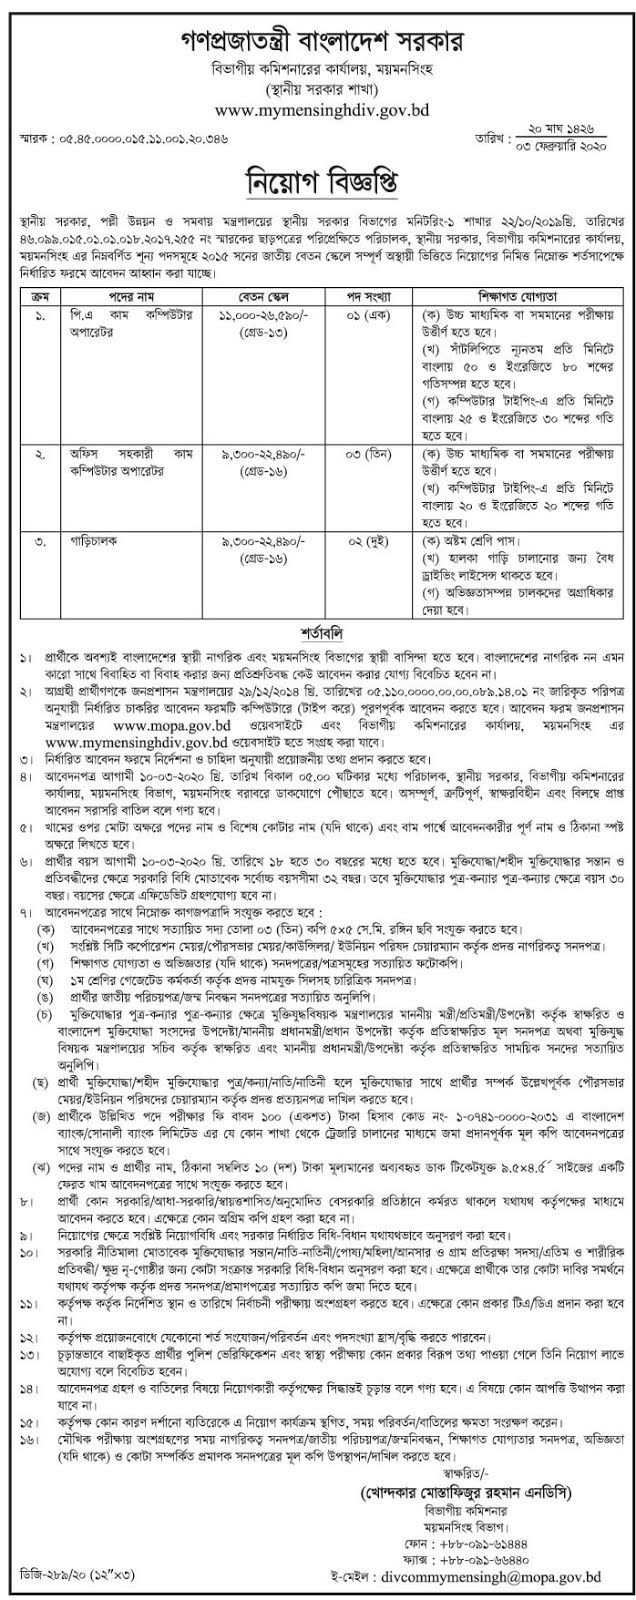 Mymensingh Divisional Commissioner's Office Job Circular 2020